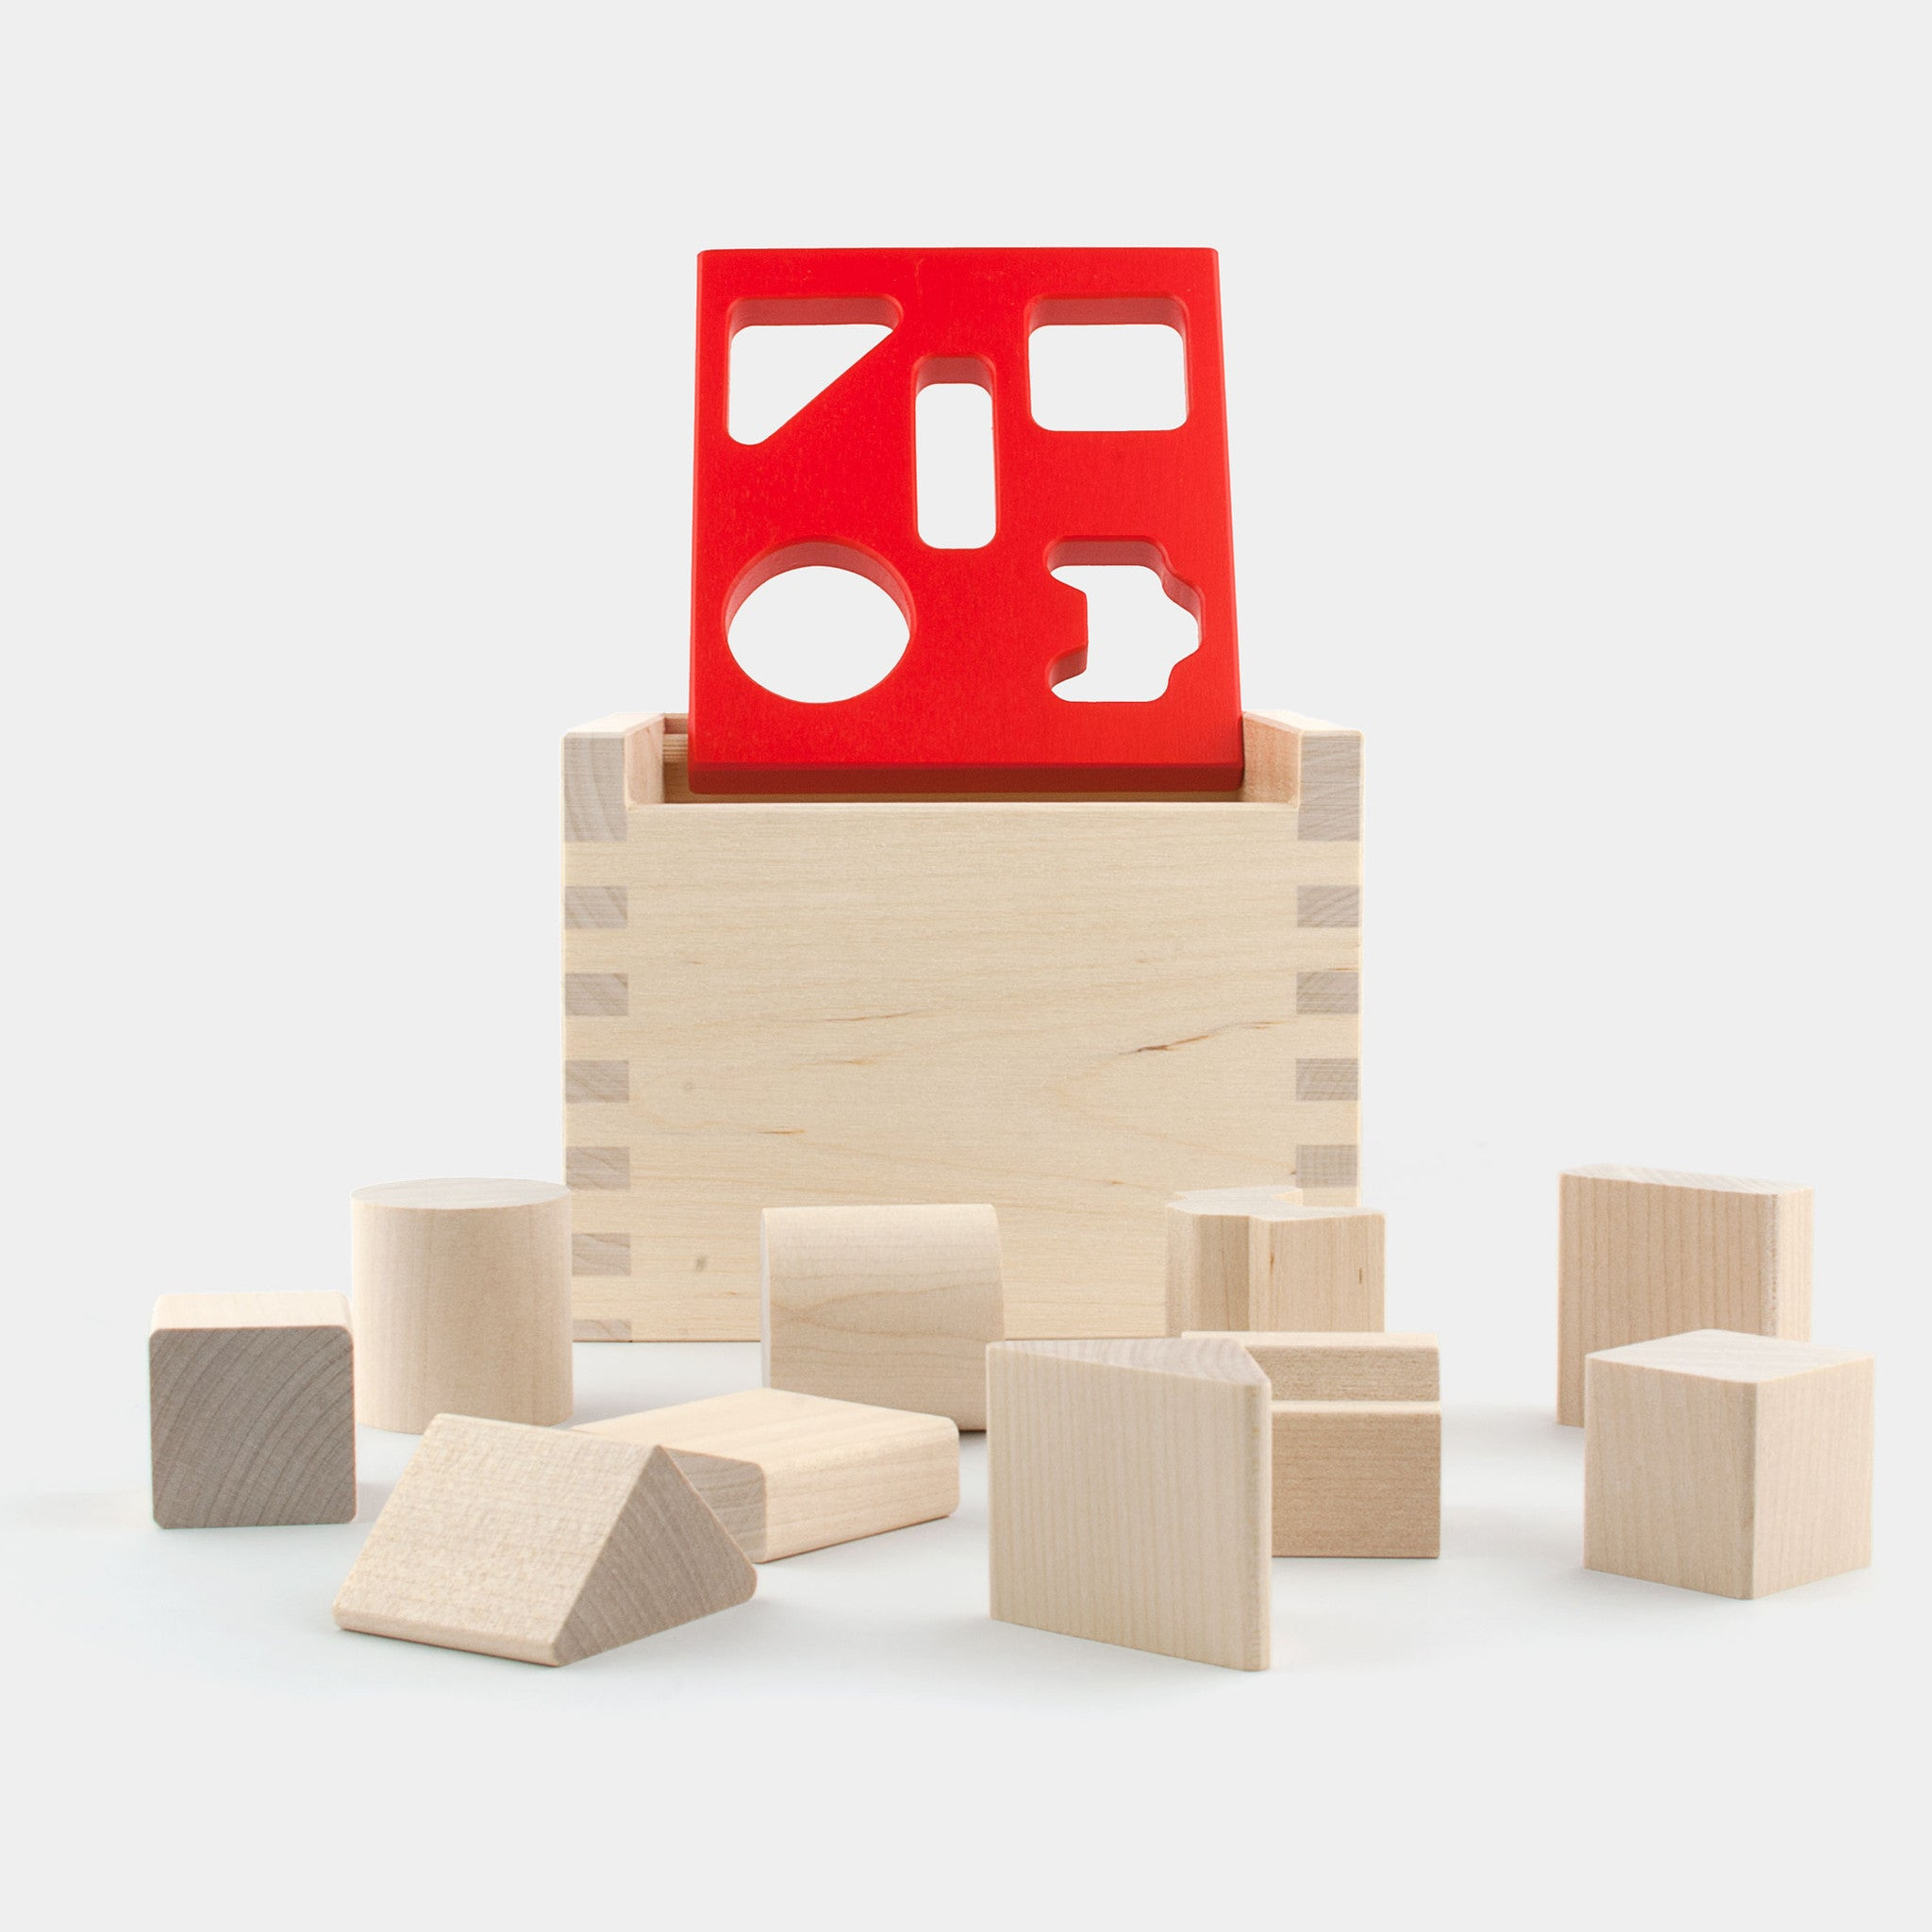 The classic birch wood posting box with 10 wooden blocks from the 1970s is handmade in Finland by Jukka Toys.